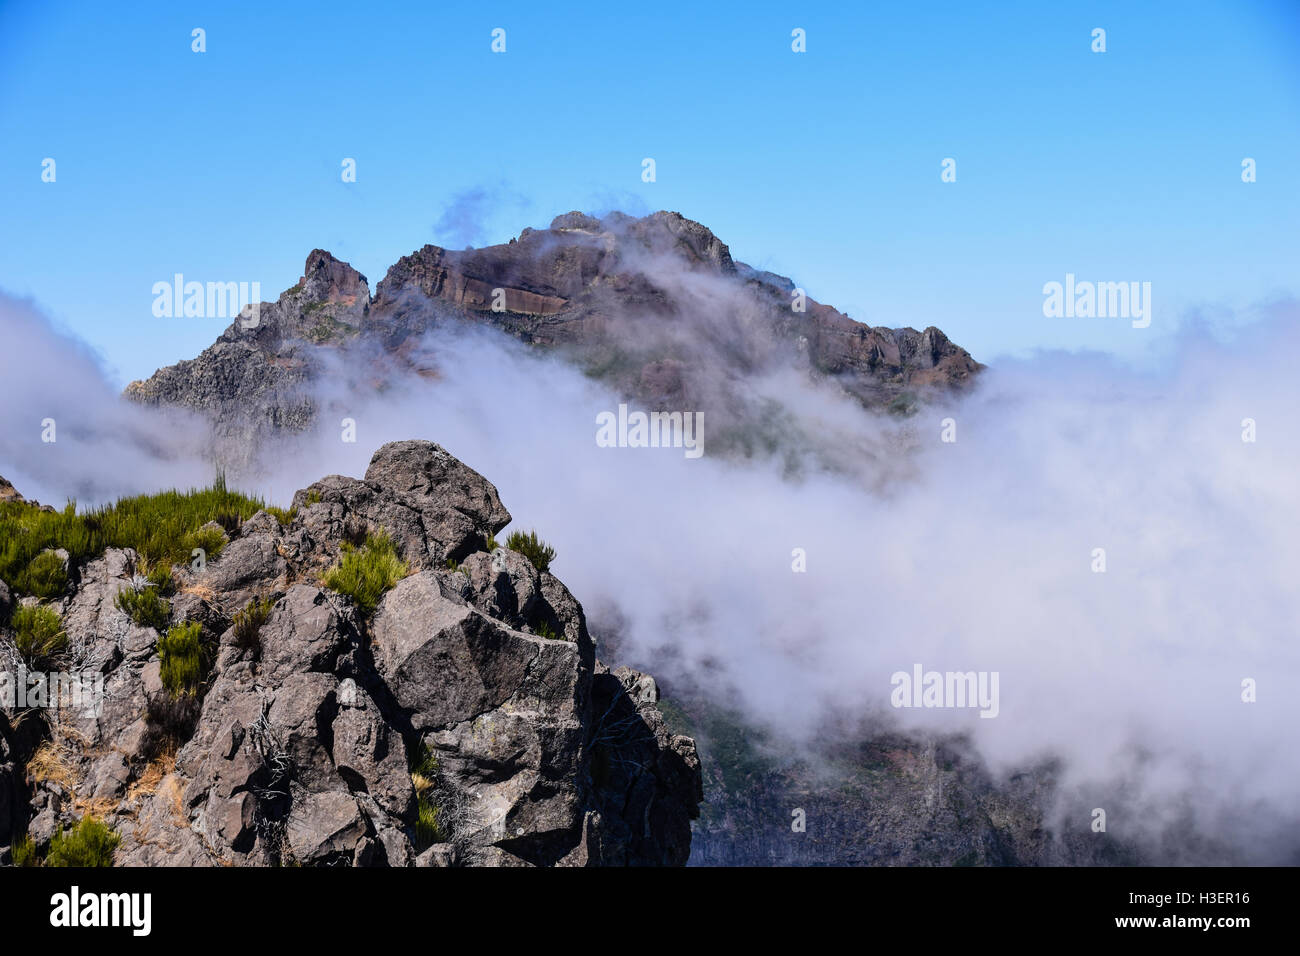 Clouds rolling in over the mountains of Pico Ruivo from Pico do Arieiro, Madeira - Stock Image